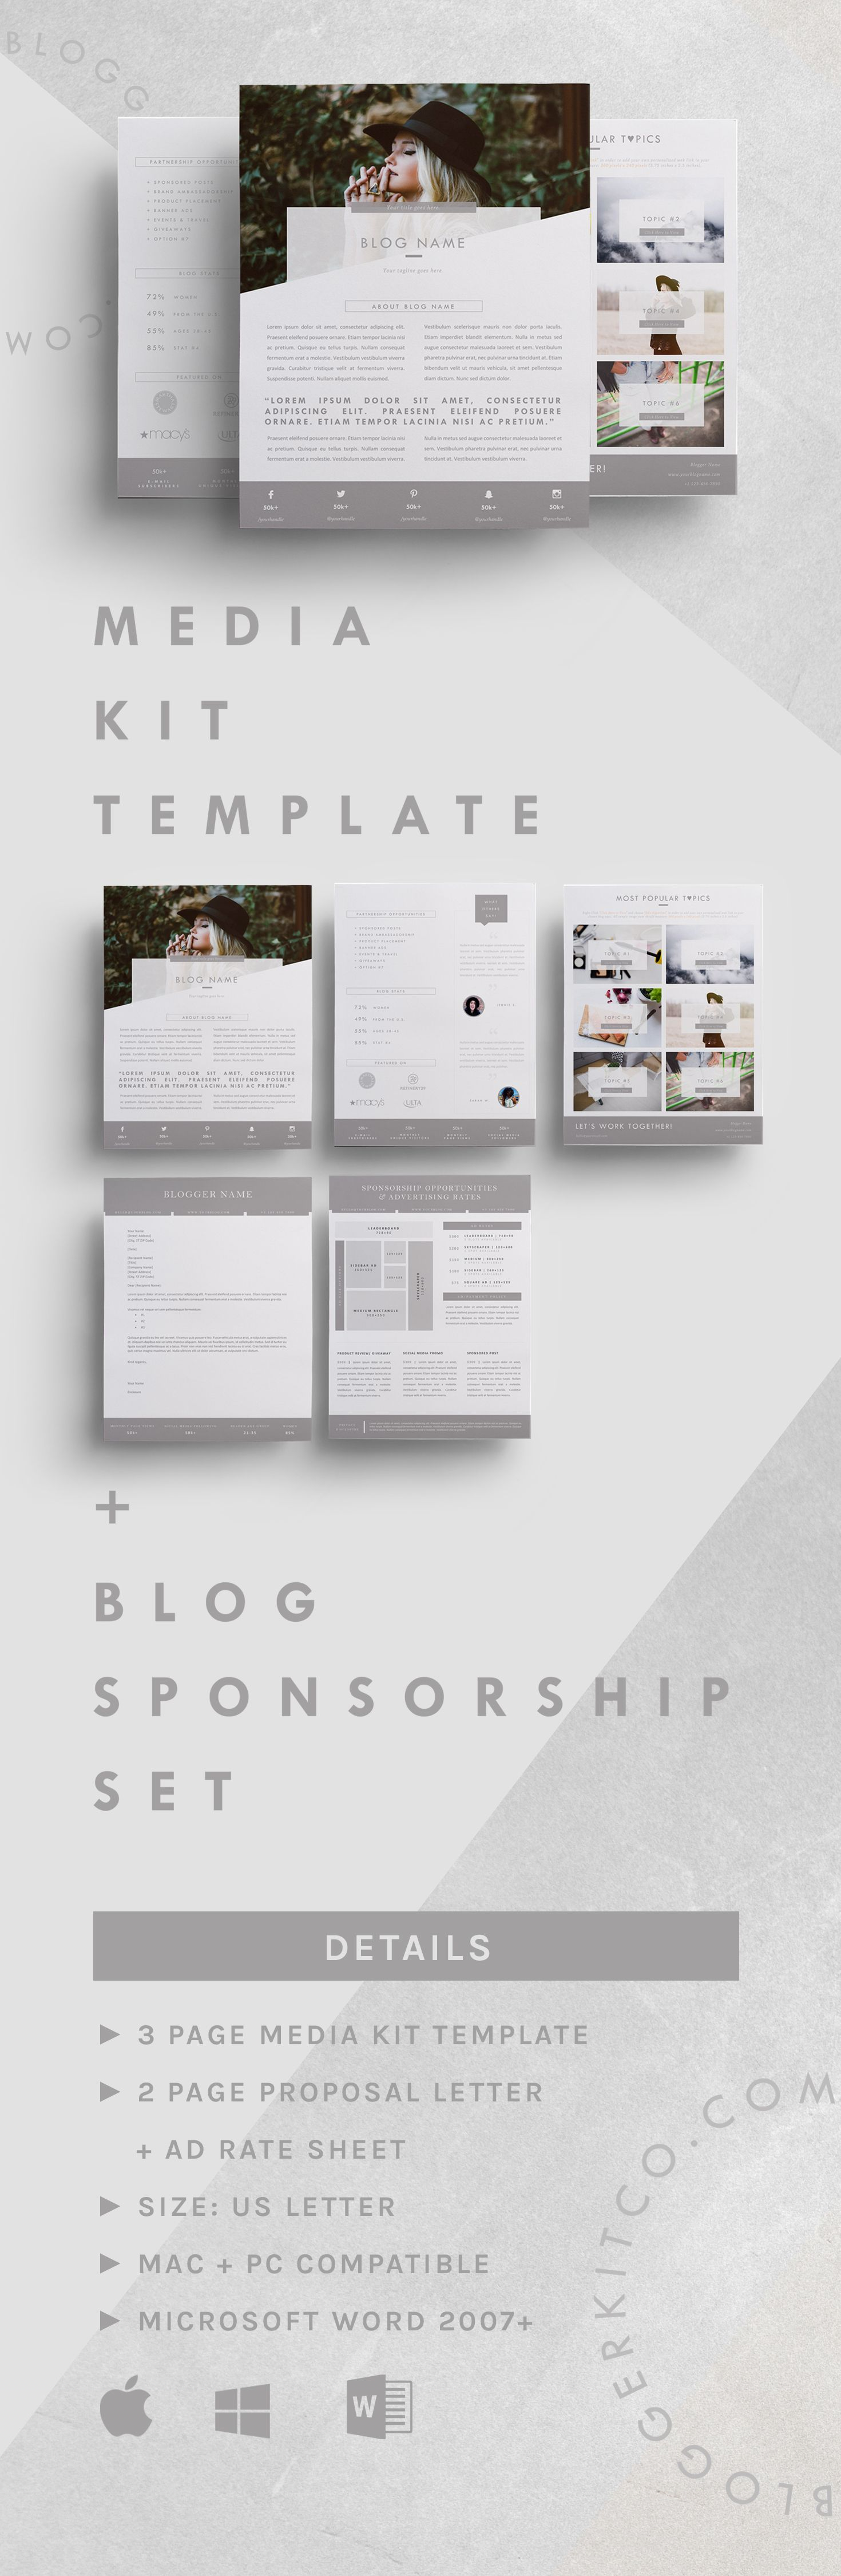 Blog Sponsorship Proposal Letter Template  Ad Rate Sheet Ms Word